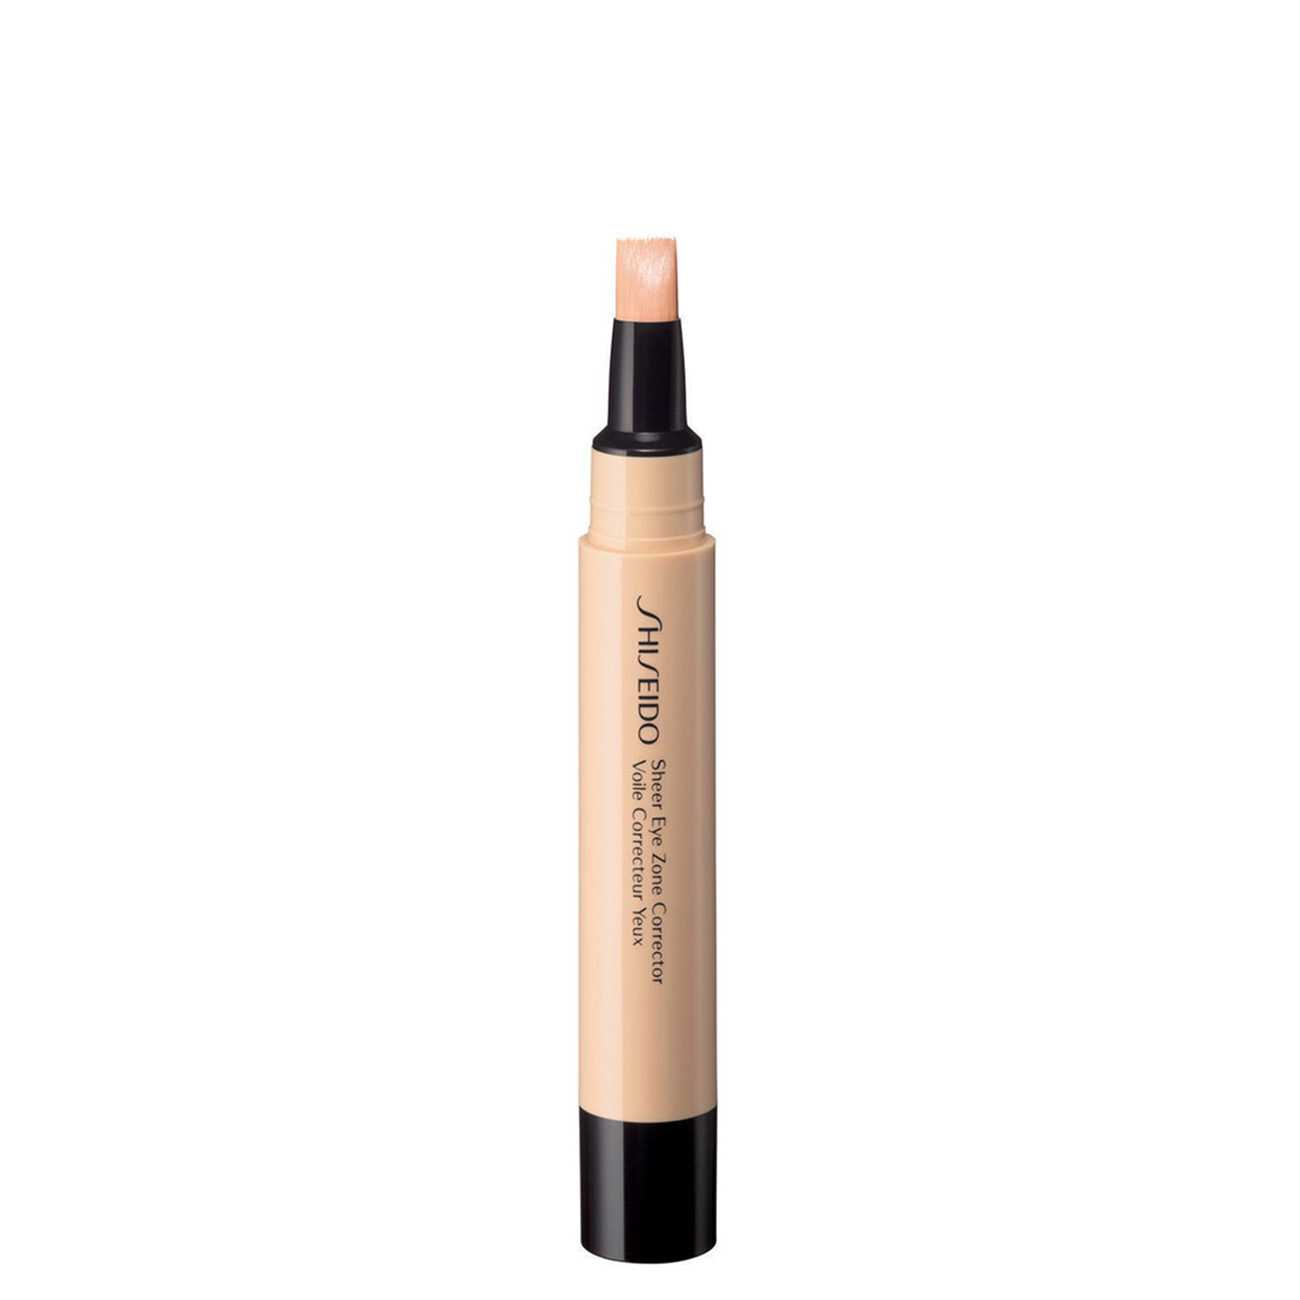 Sheer Eye Zone Corrector 3.8 Ml Natural Ochre 104 Shiseido imagine 2021 bestvalue.eu